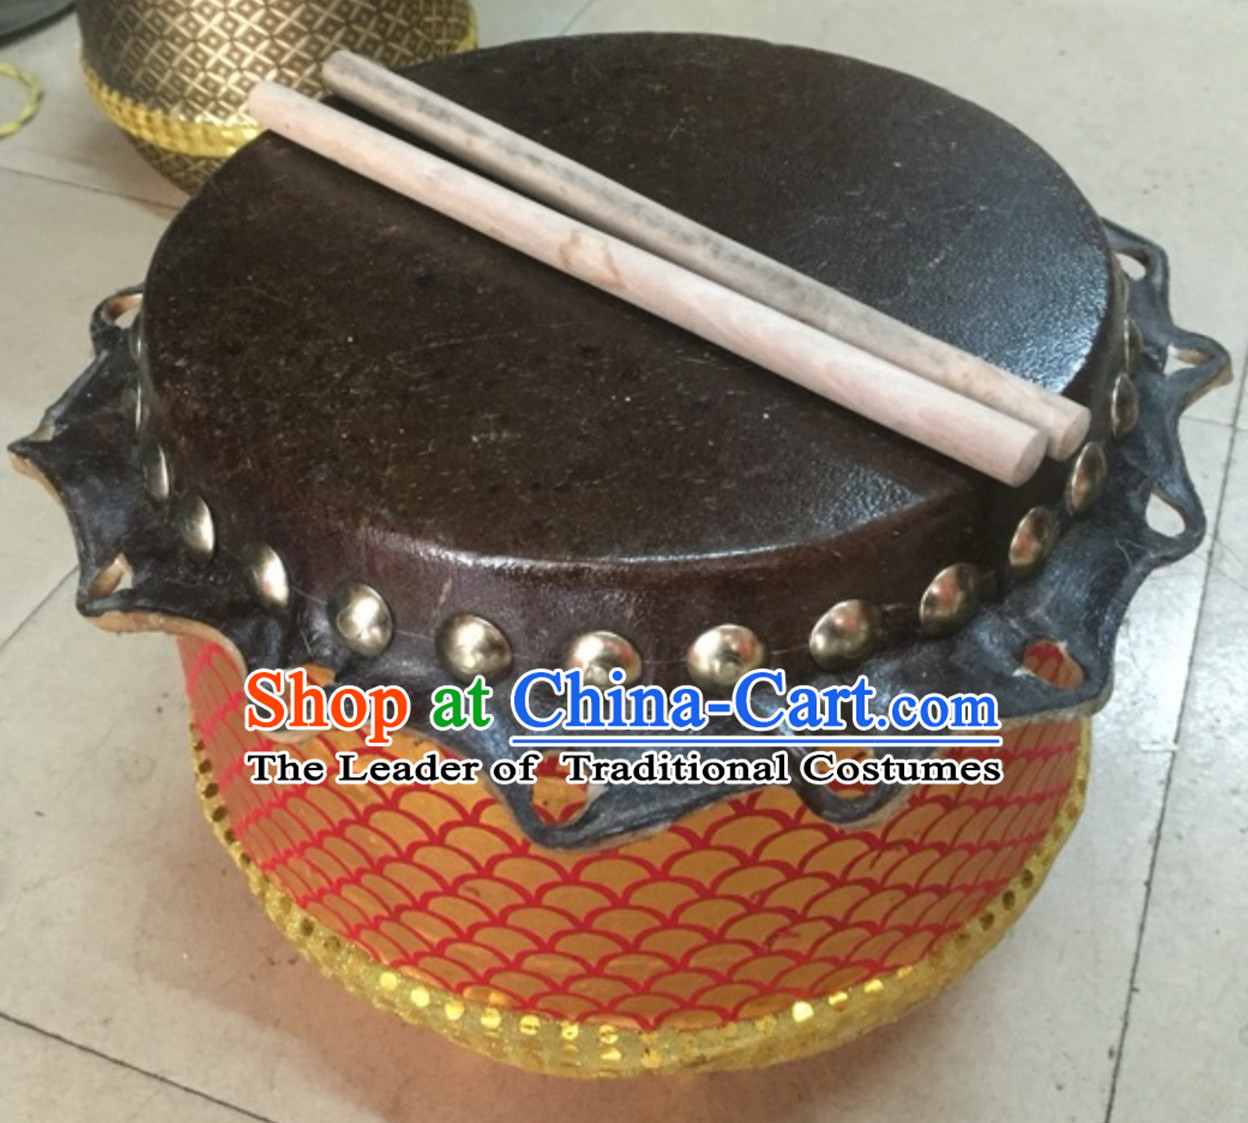 12.9 Inches Lion Dance Drum for Kids Children